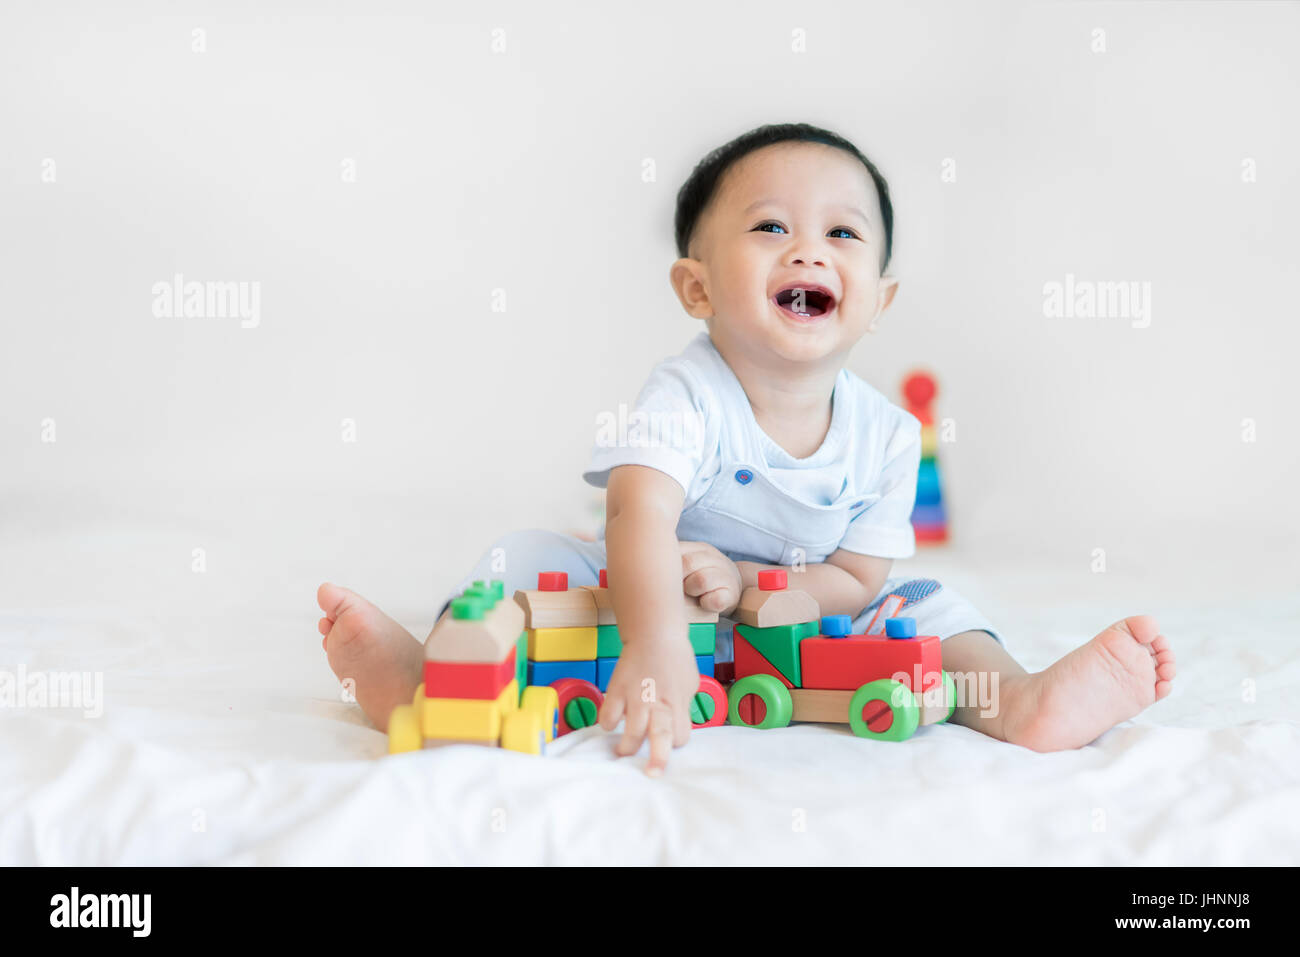 Adorable Asian baby boy 9 months sitting on bed and playing with color wooden train toys at home. - Stock Image